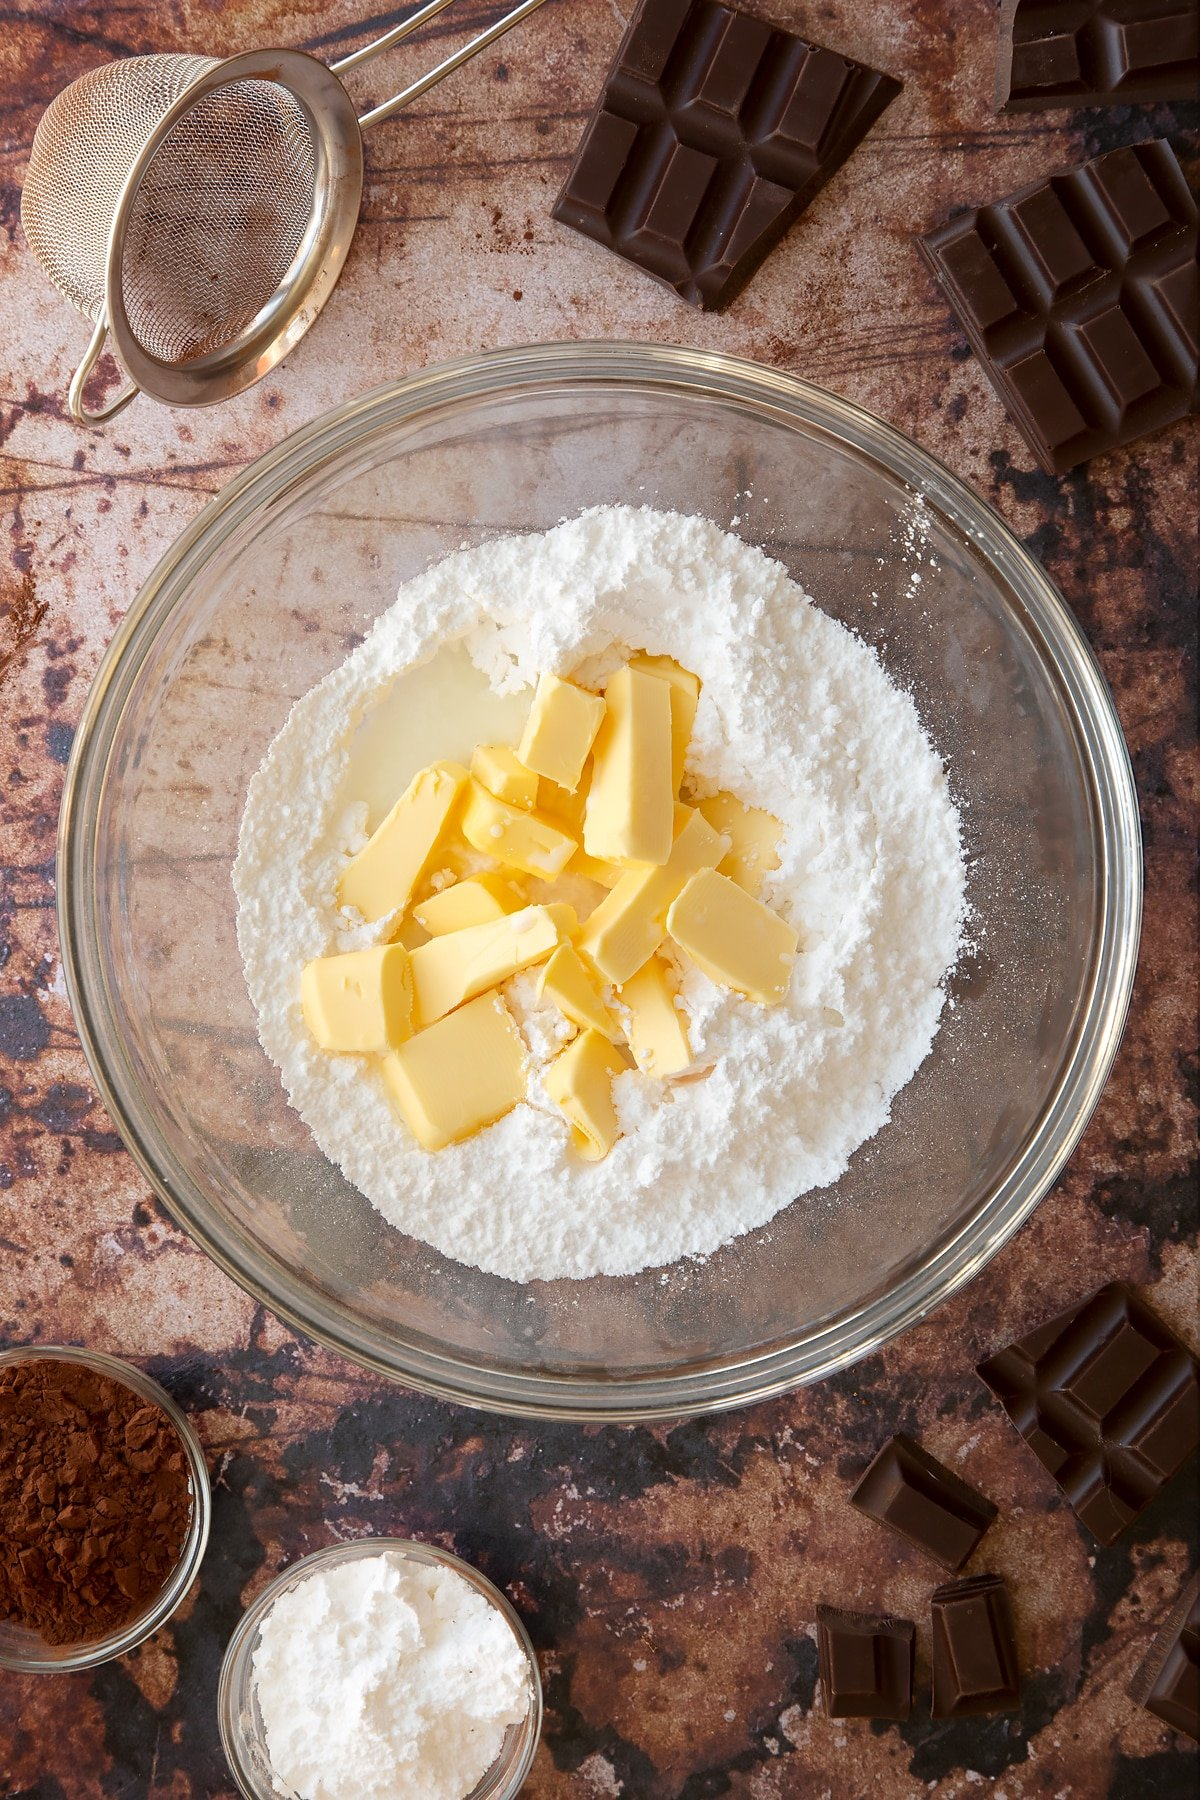 Butter, milk, vanilla and icing sugar in a glass mixing bowl. Ingredients for the caterpillar cake recipe surround the bowl.